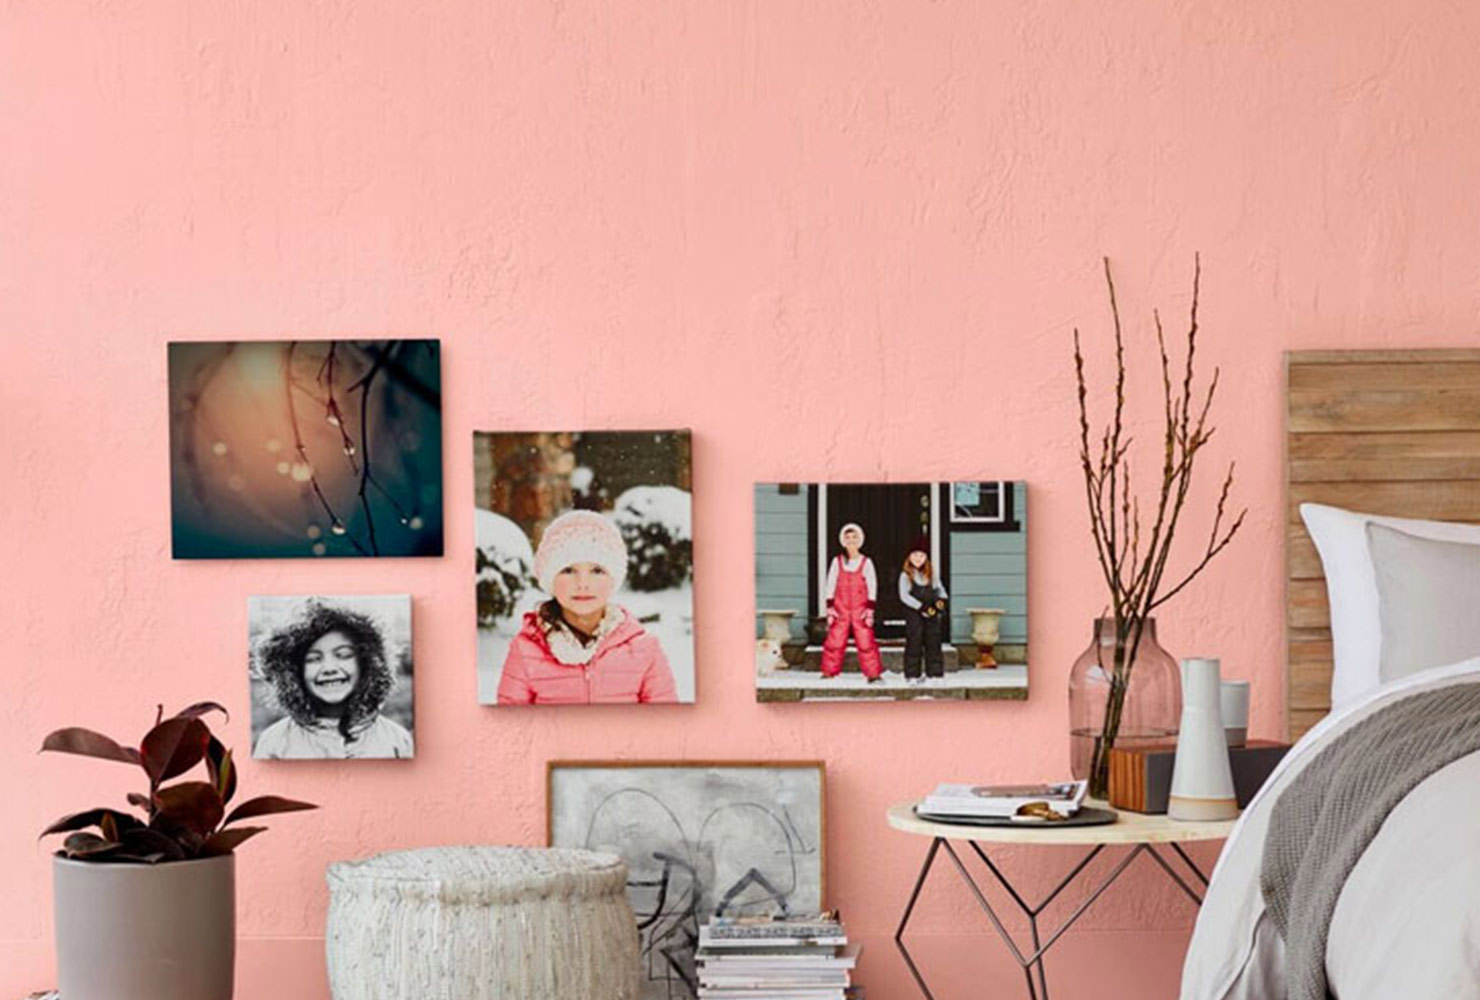 Canvas prints hanging on pink wall.